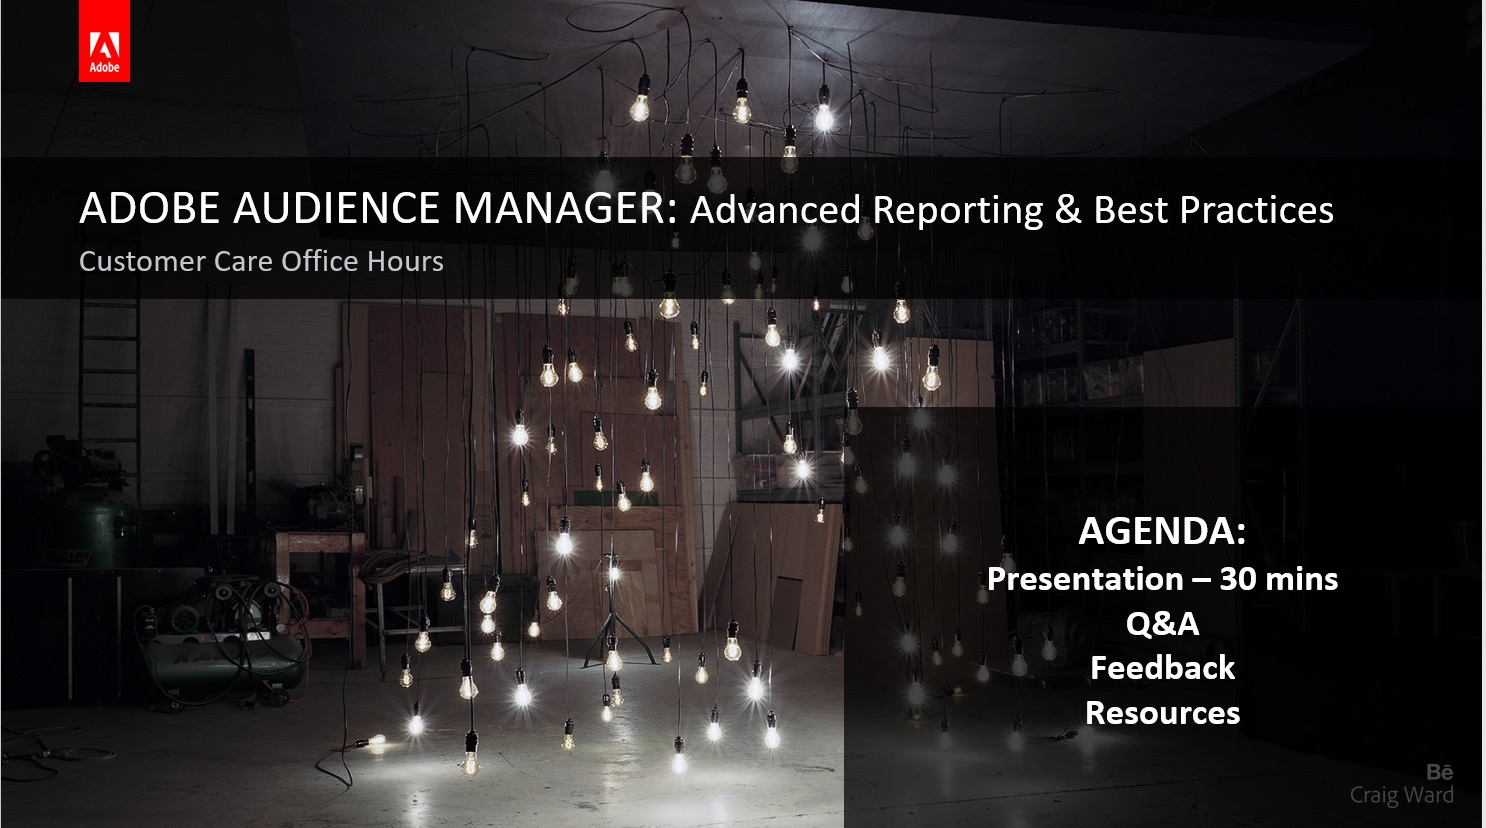 Adobe Audience Manager - Advanced Reporting and Best Practices